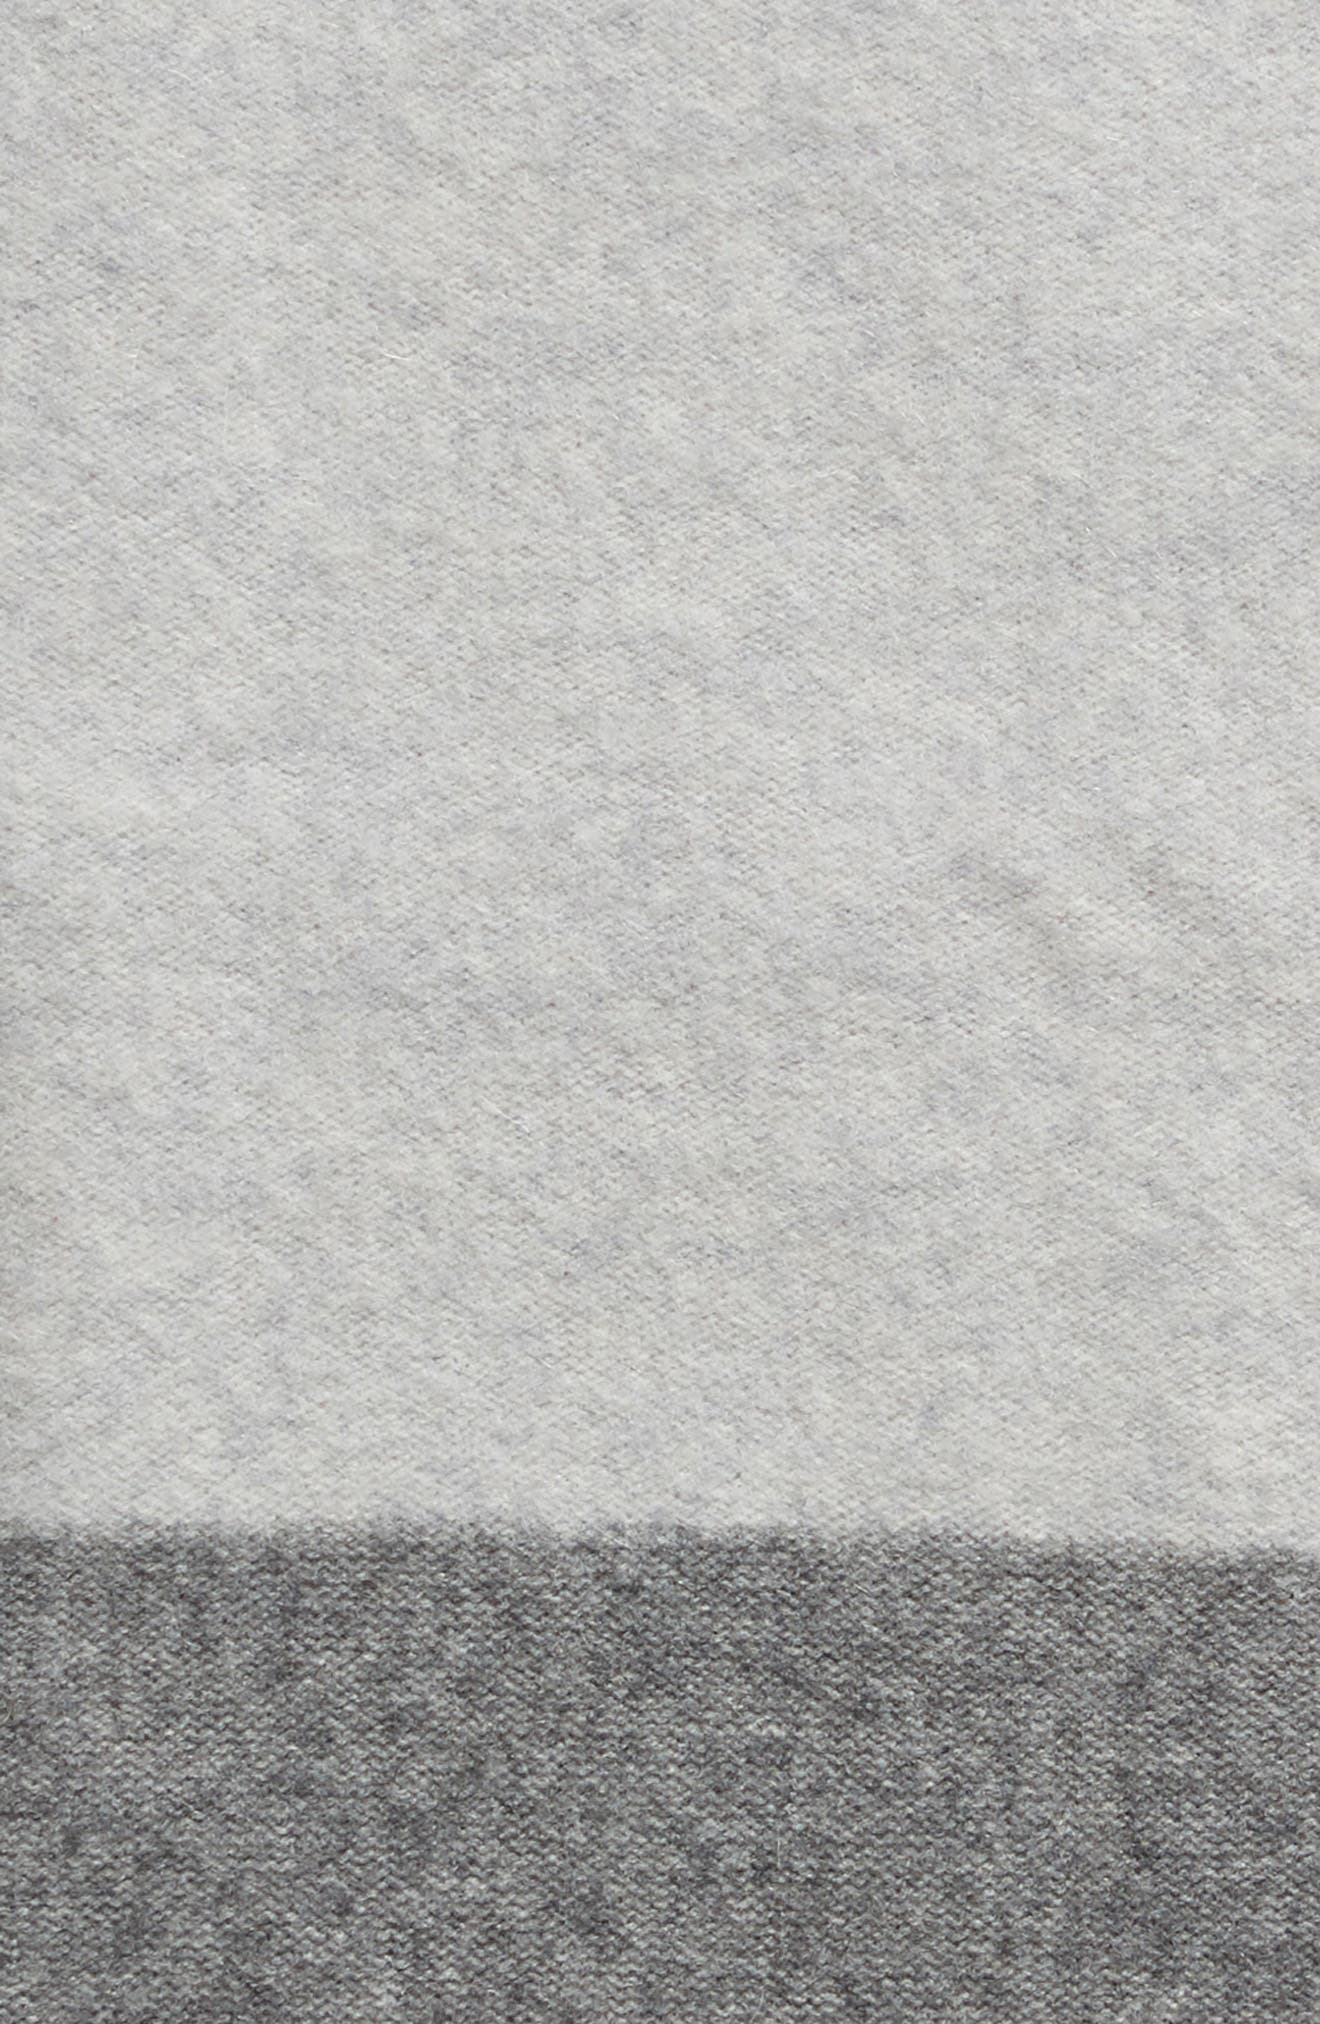 NORDSTROM SIGNATURE, Ombré Stripe Cashmere Throw, Alternate thumbnail 2, color, GREY CLAY MULTI